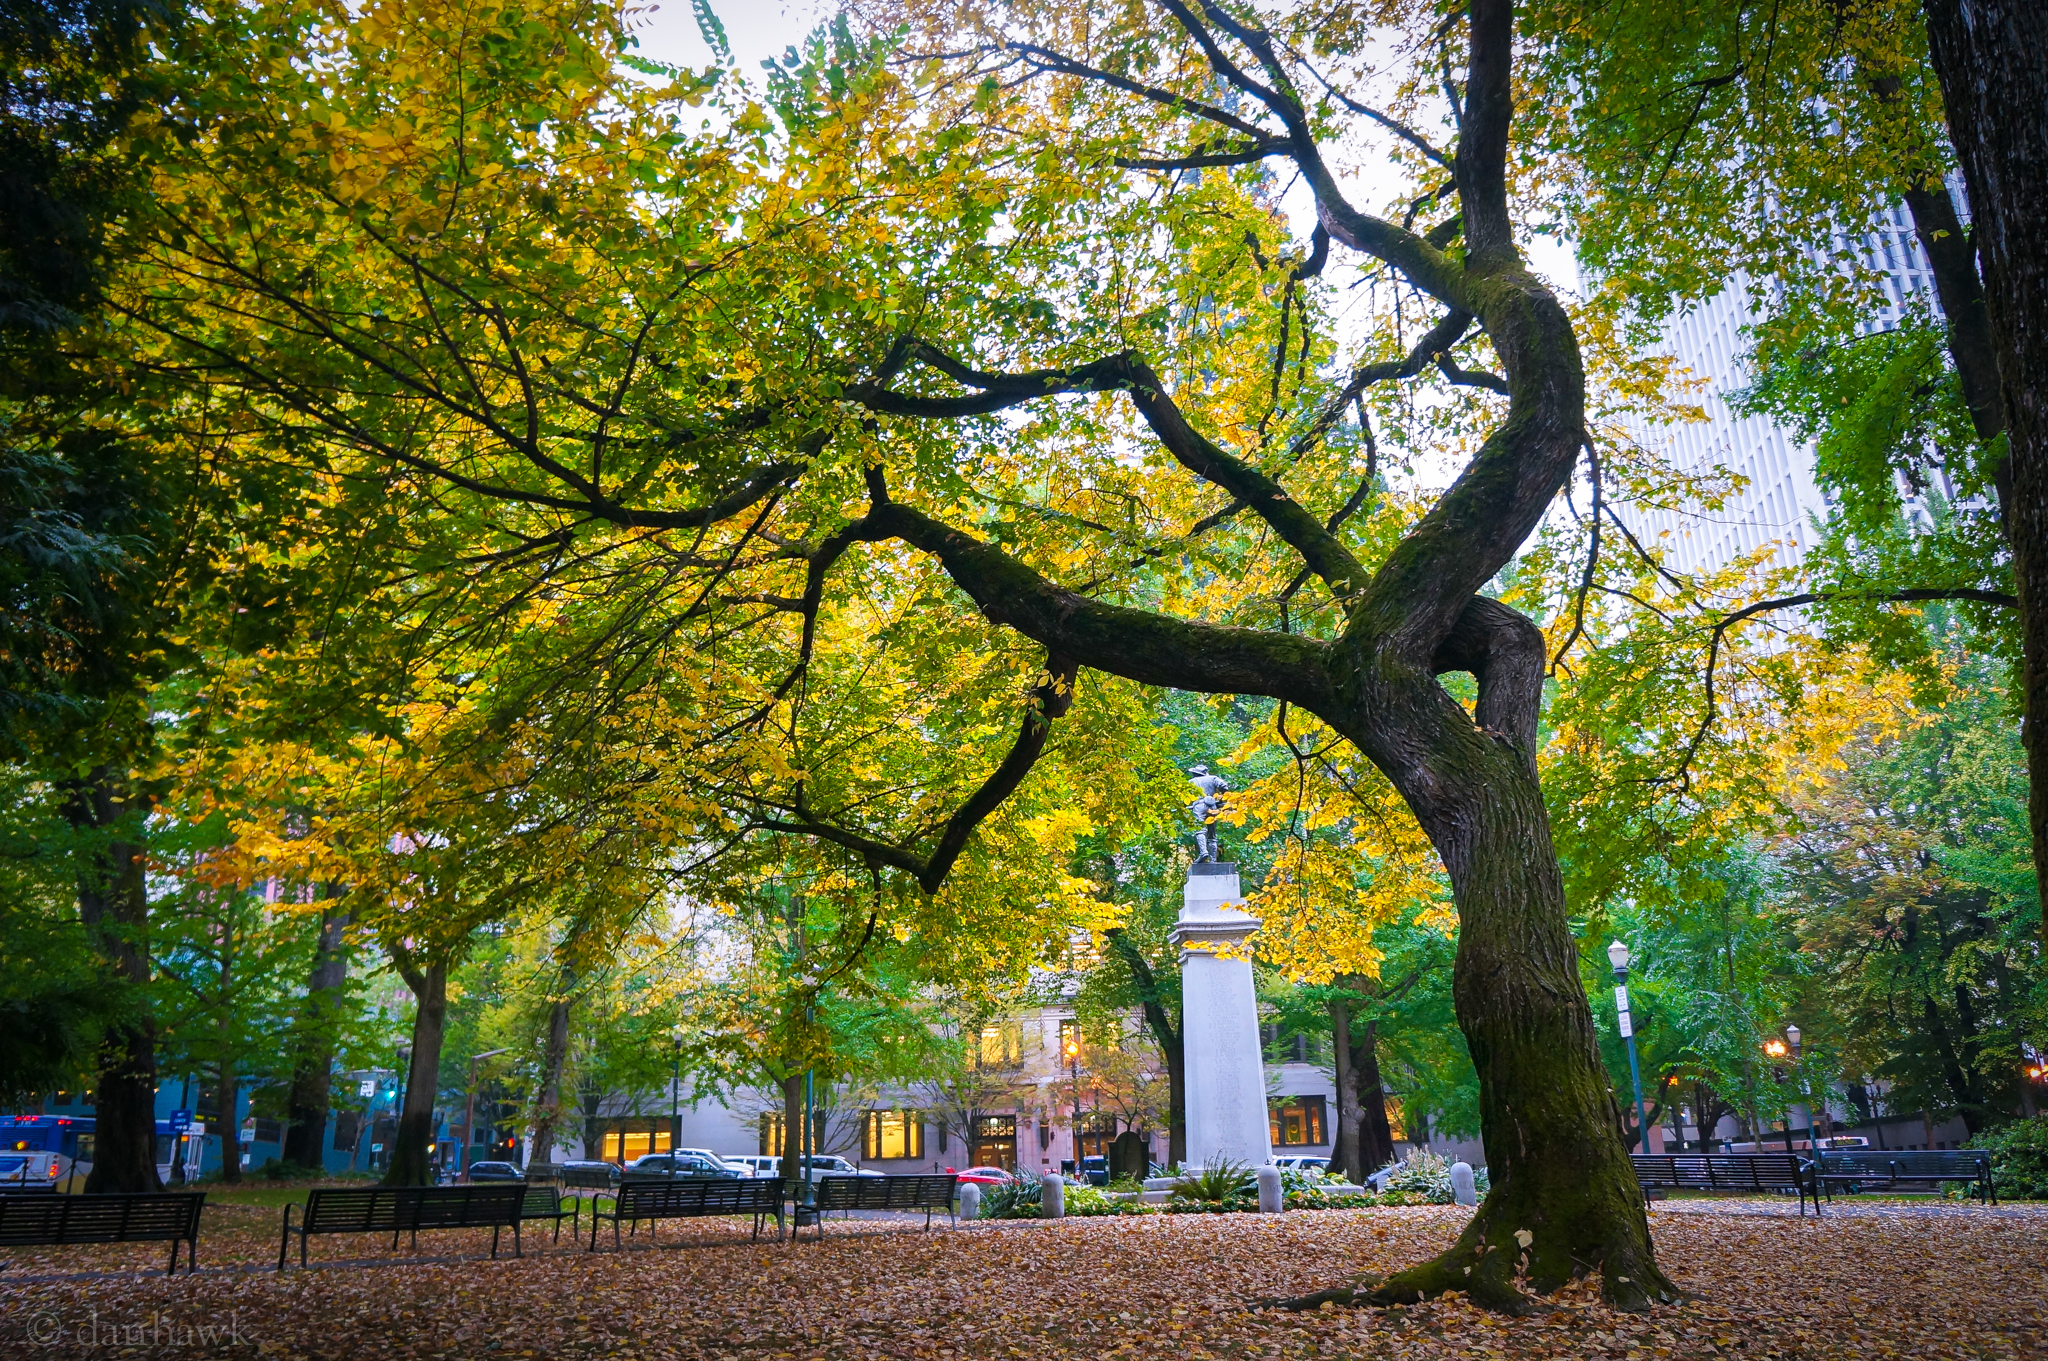 Lownsdale Square | 365 Project | October 11th, 2012